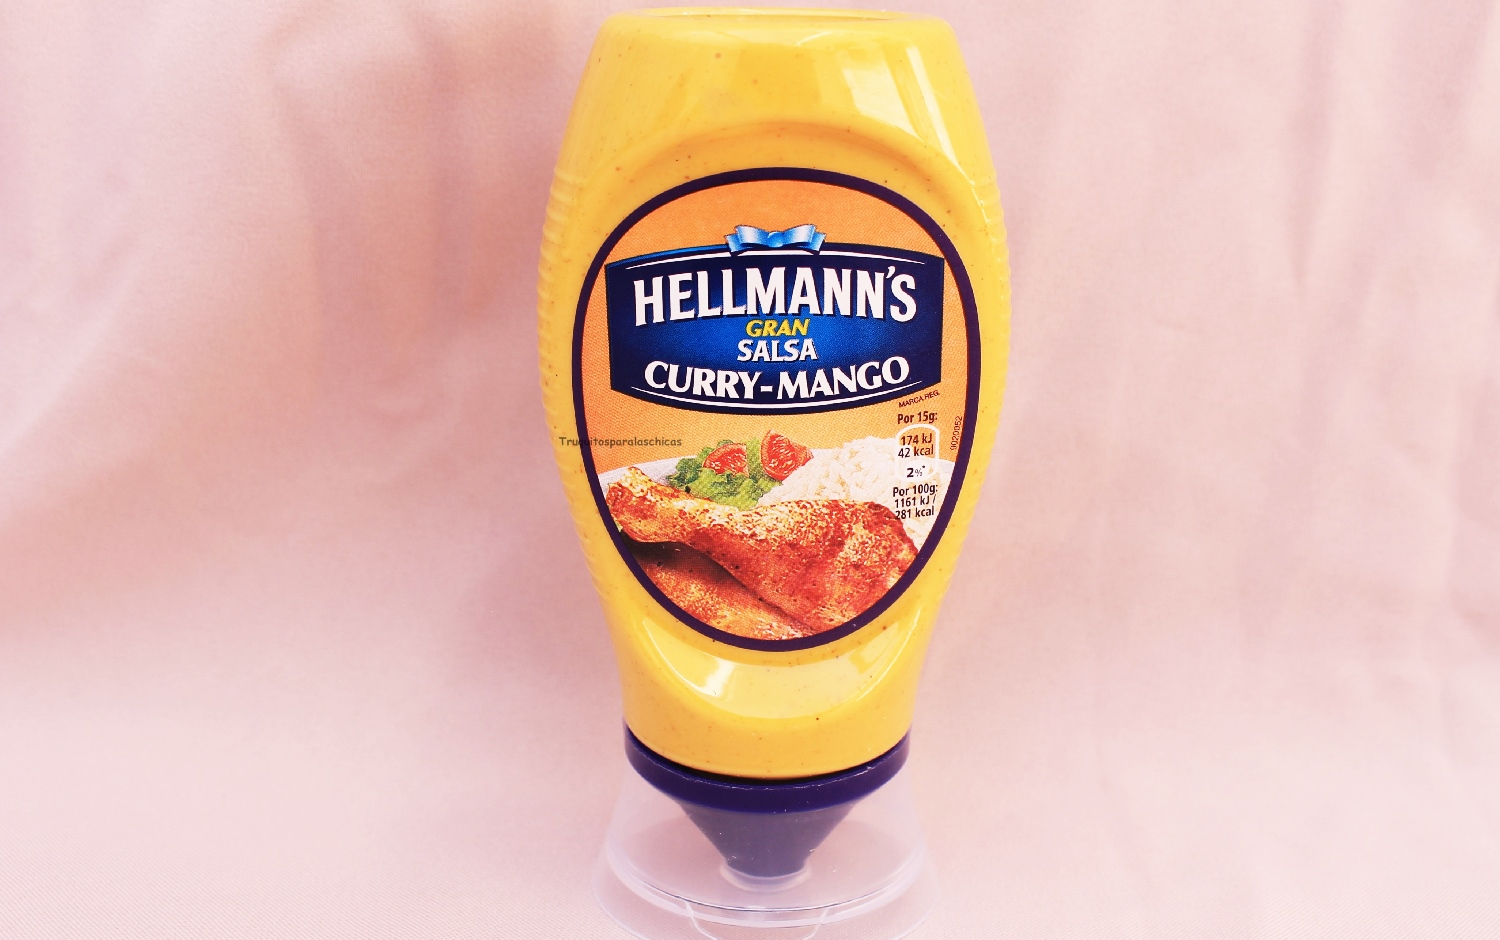 Hellmann's Curry-mango